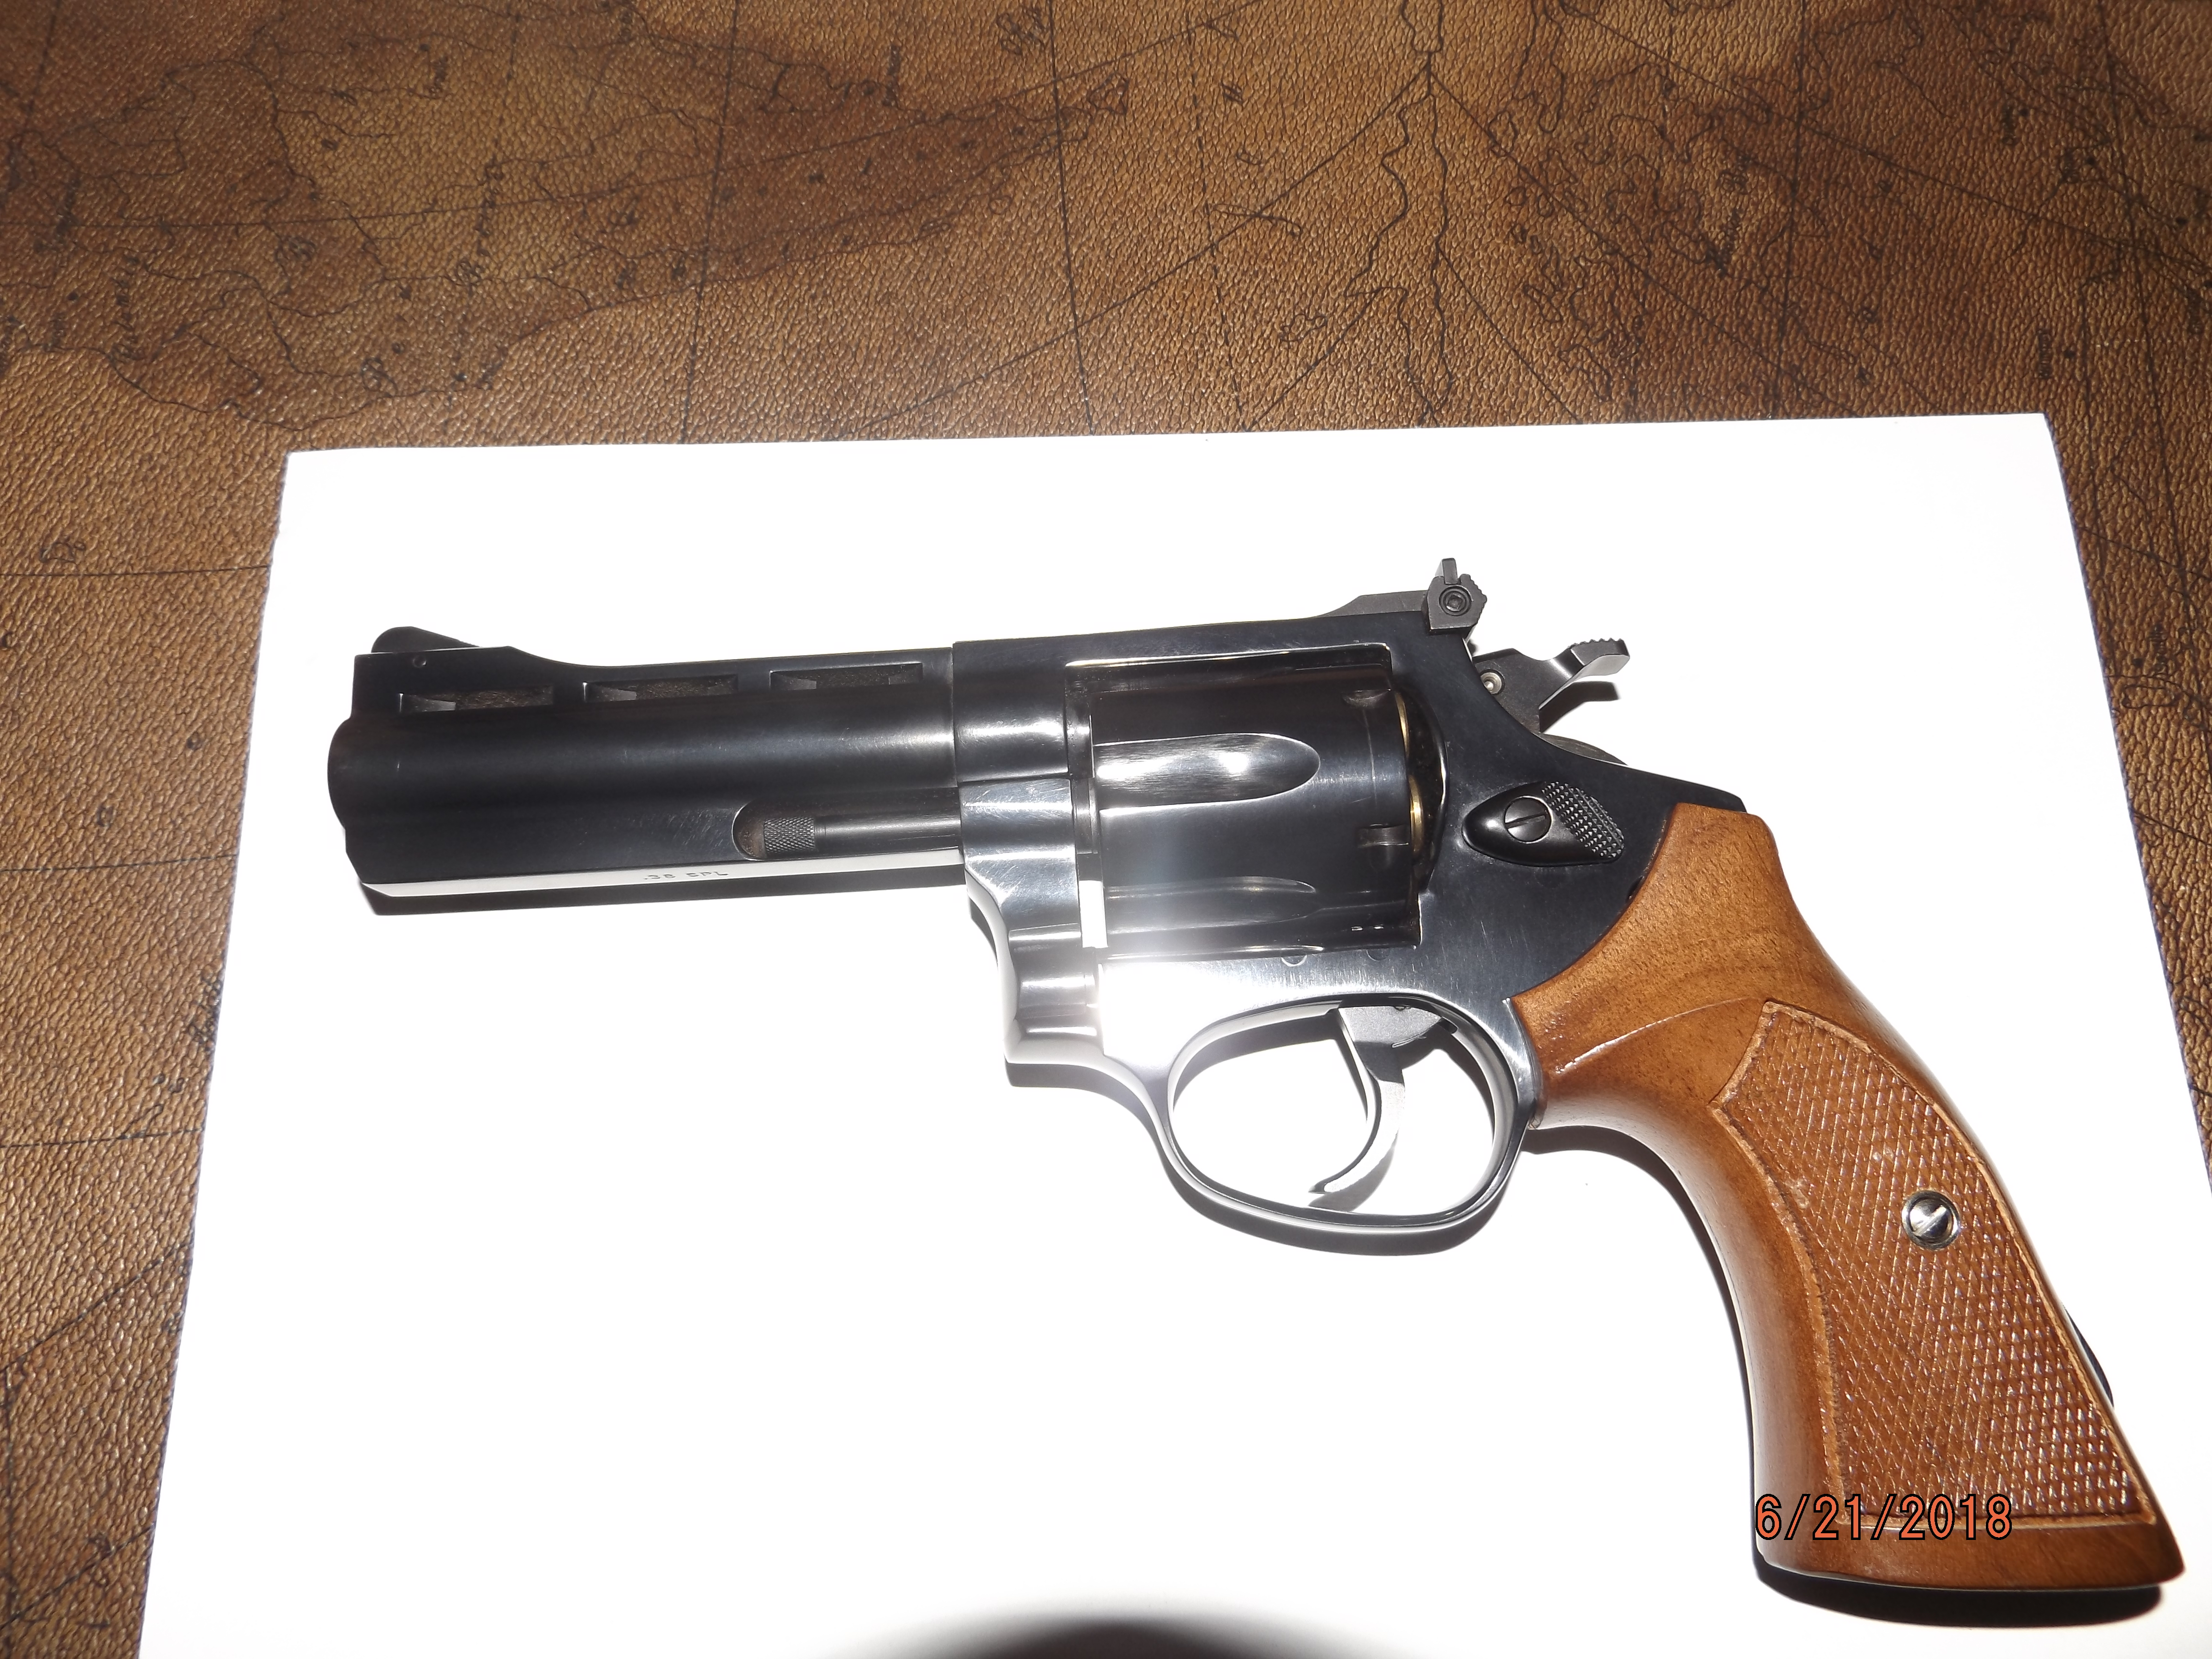 Let's see your Rossi Revolver photos! - Page 18